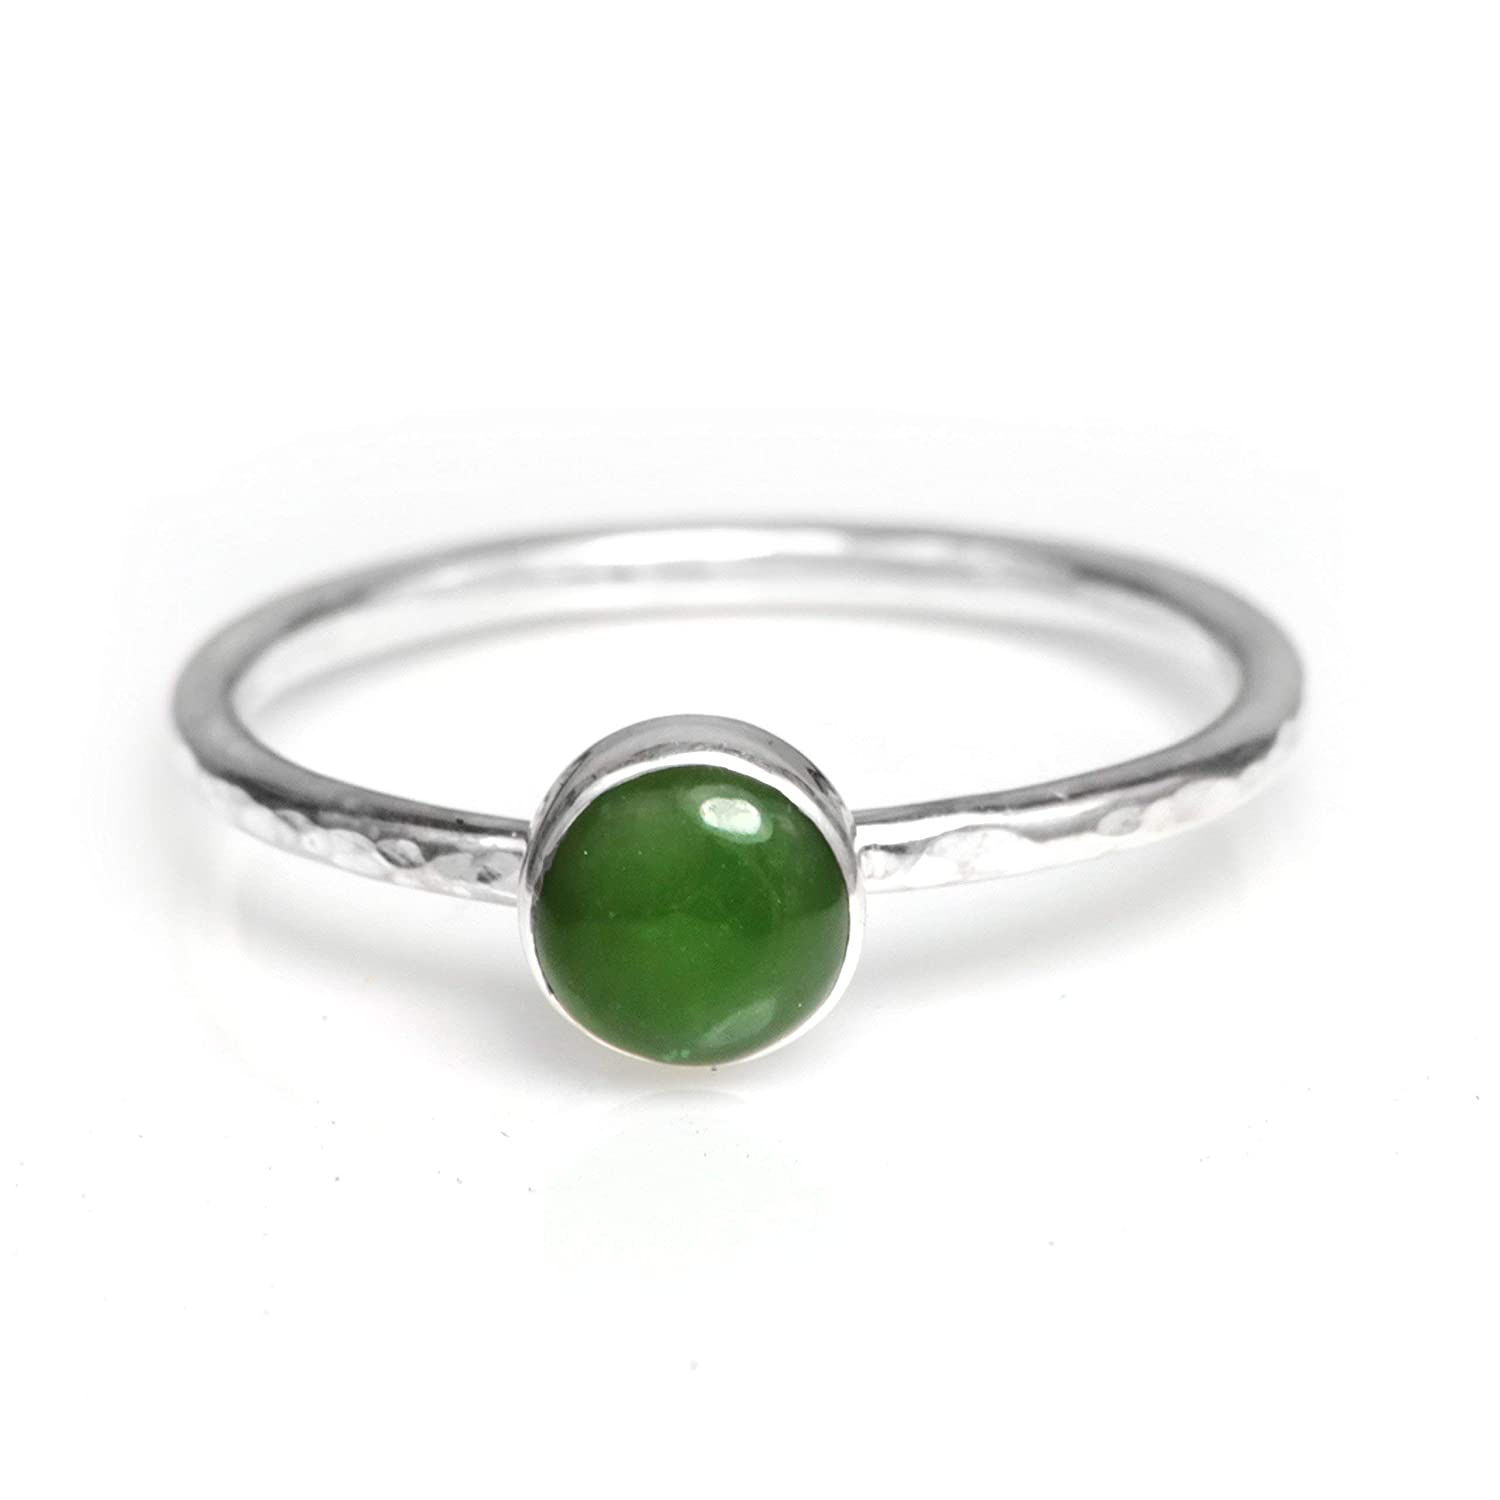 Natural Jade and Sterling Silver Stackable Ring